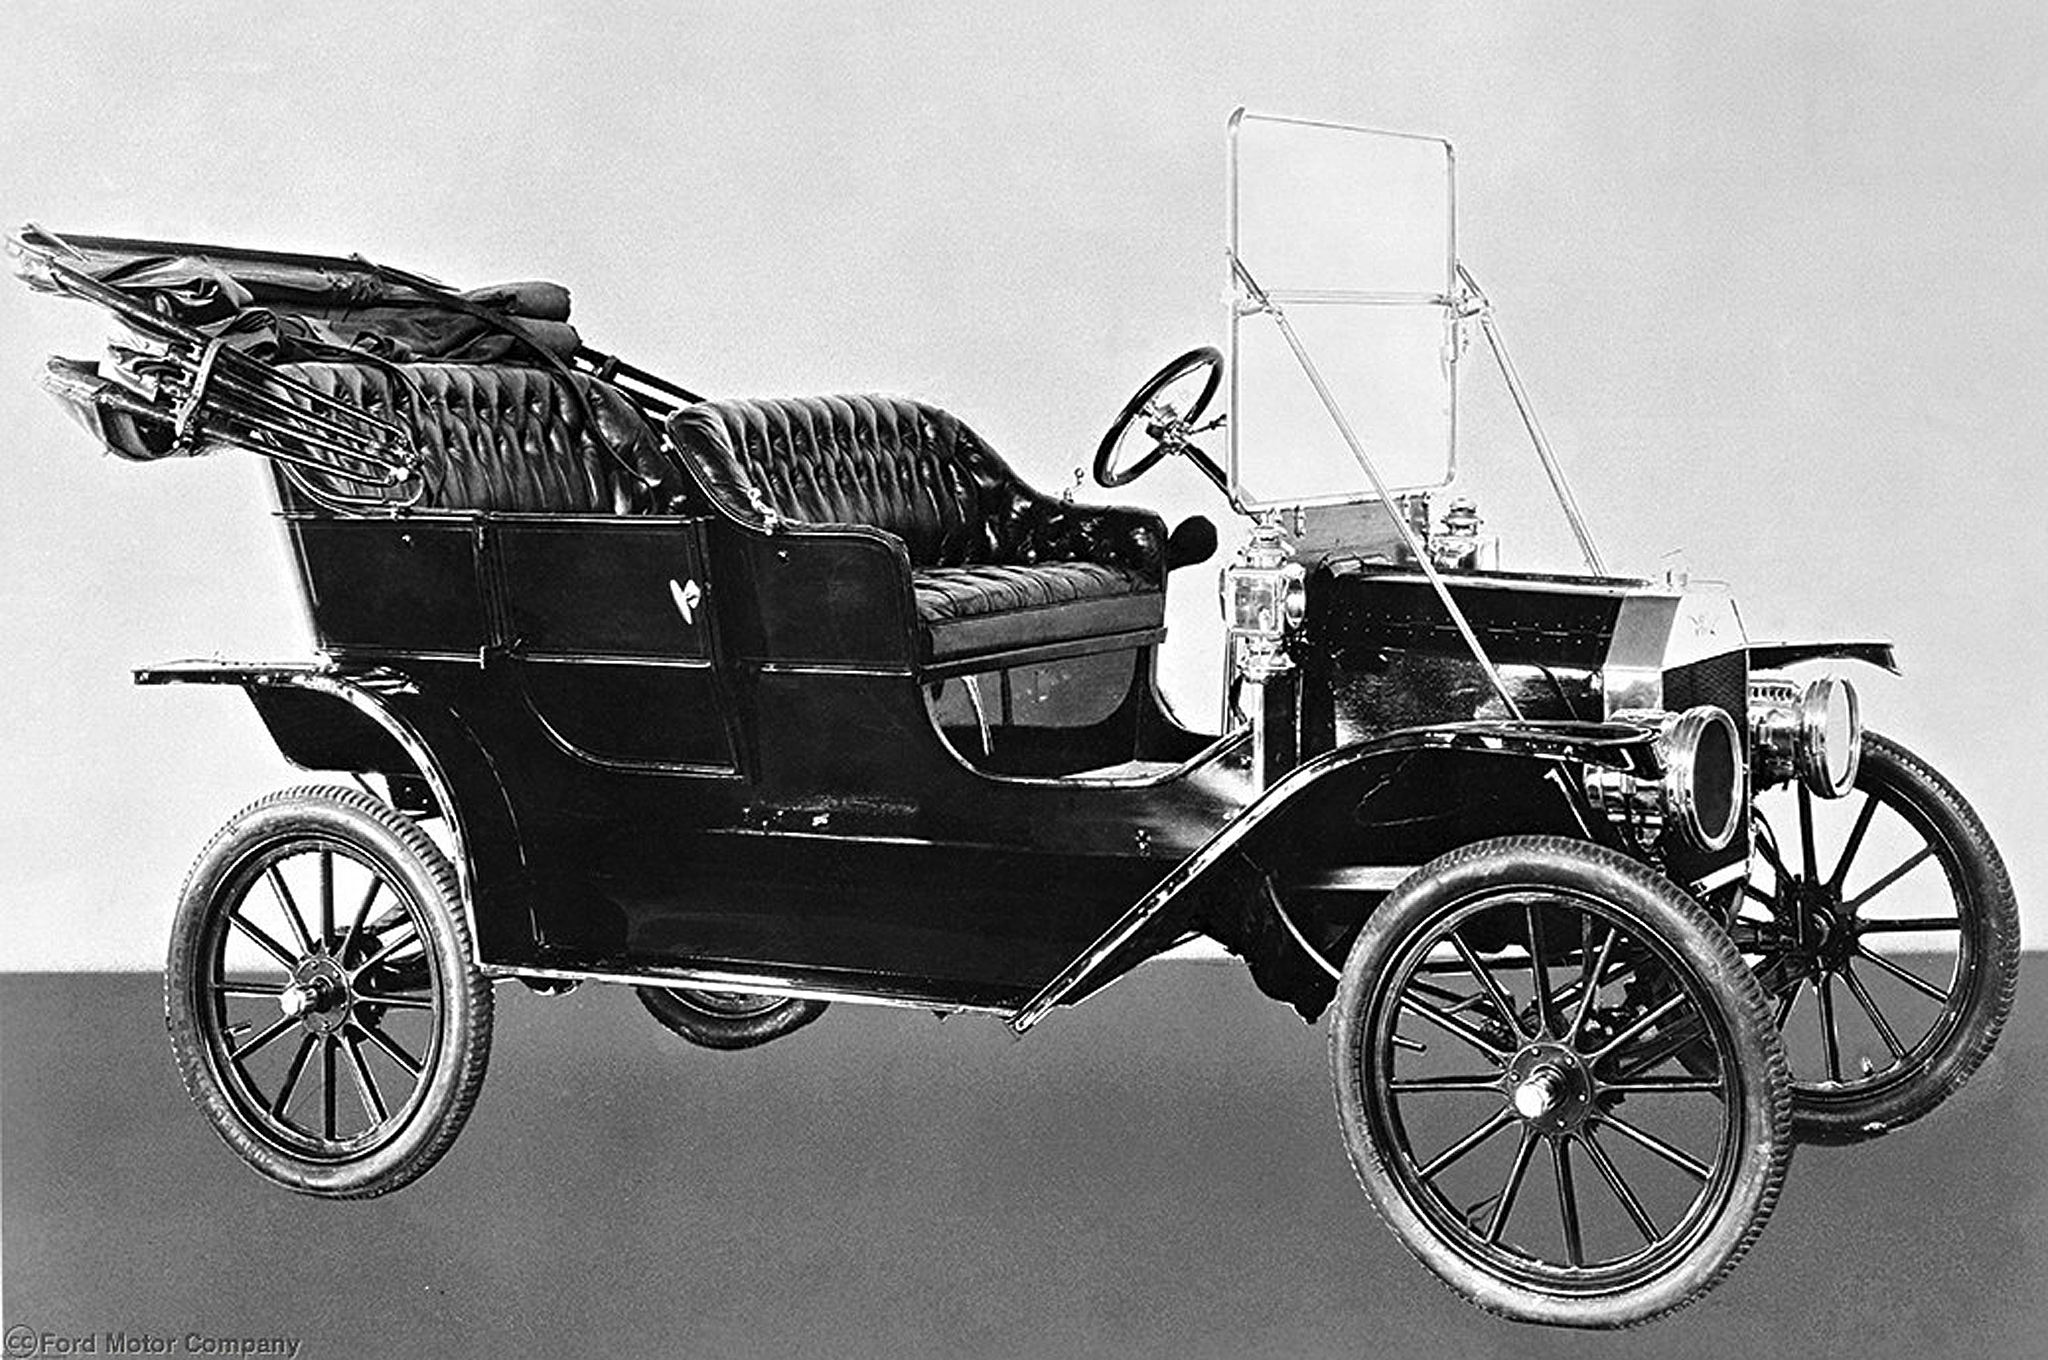 15 Cars That Shaped The Ford Motor Company   Motor Trend 15 Cars That Shaped The Ford Motor Company